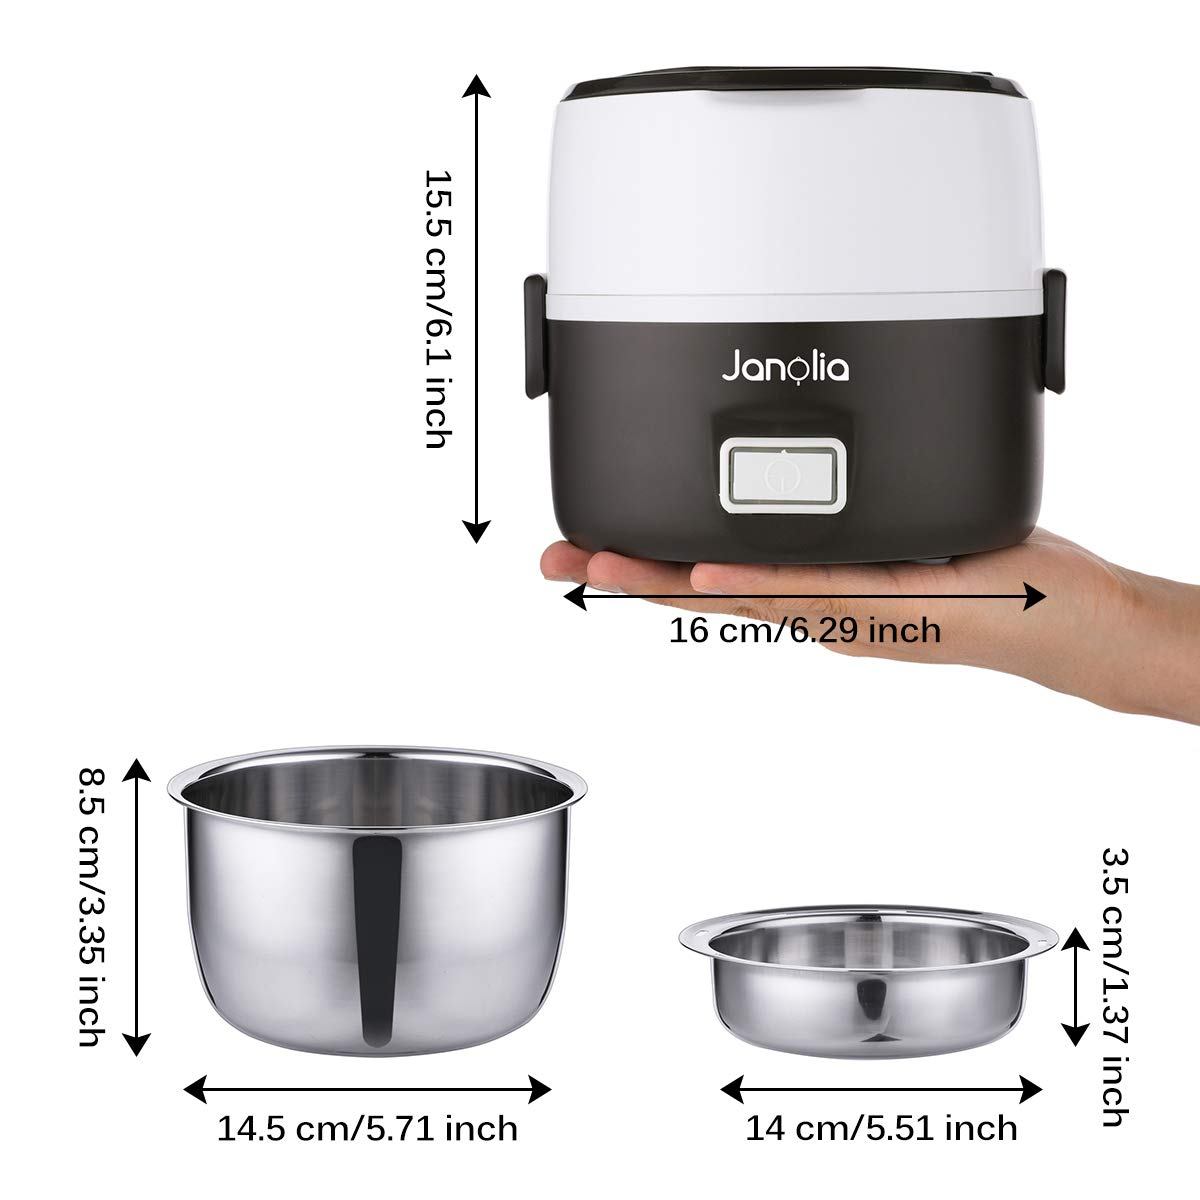 Janolia Electric Food Steamer, Portable Lunch Box Steamer with Stainless Steel Bowls, Measuring Cup by Janolia (Image #3)